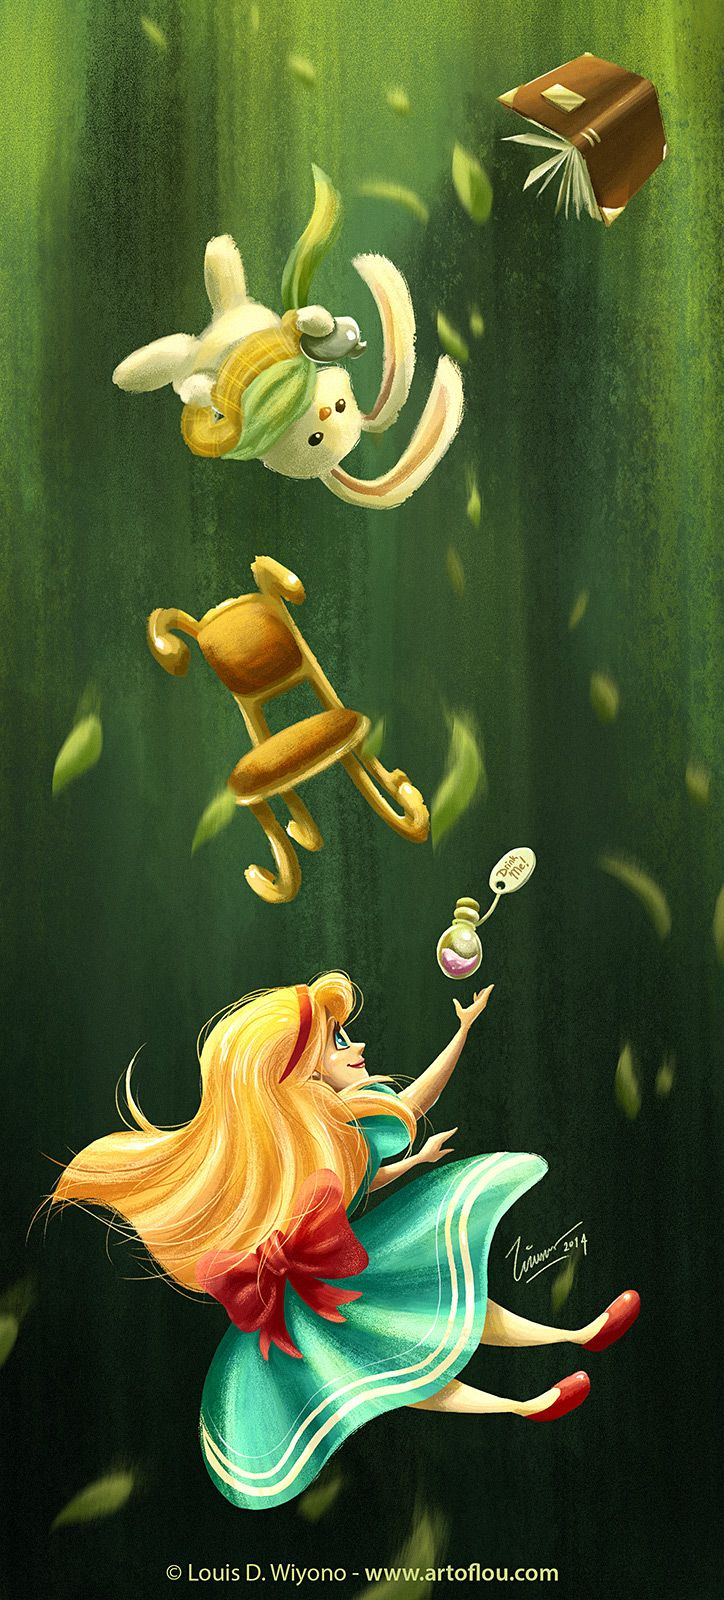 Alice In Wonderland - by Louis D. Wiyono, Wizmaya Design Studio  #illustration #kidlitart #disney #kidlitart